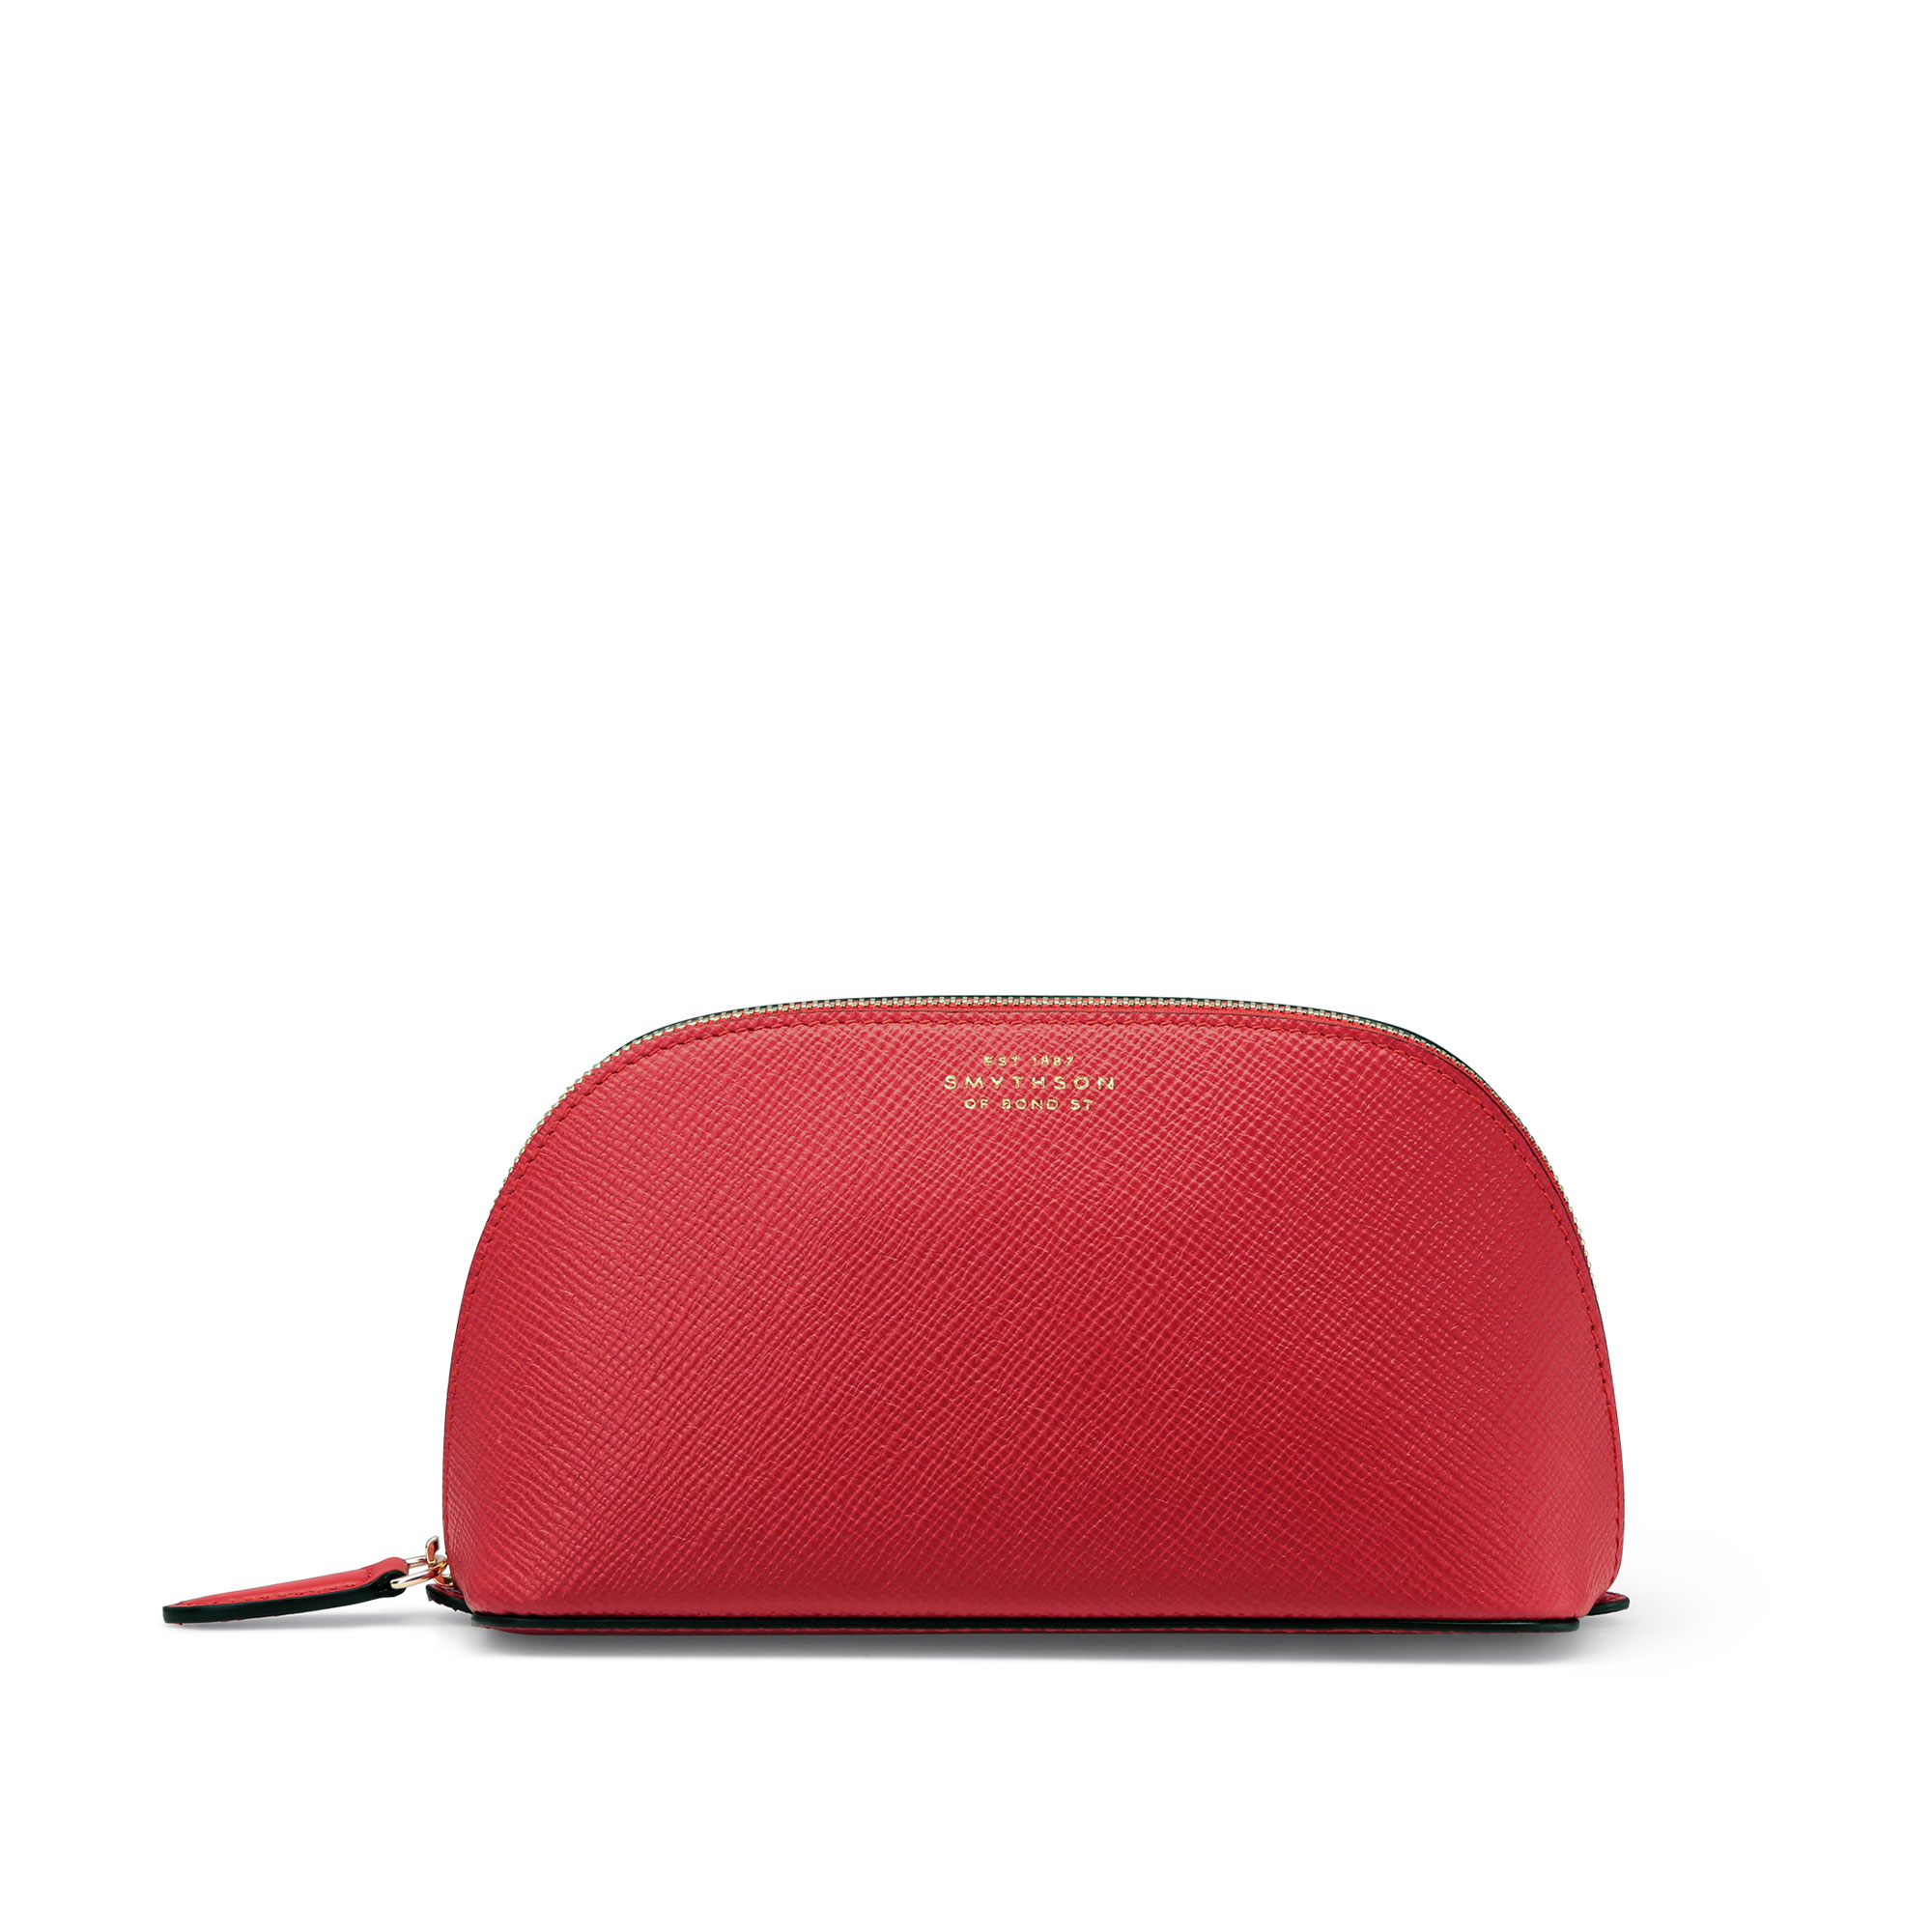 Panama Cosmetic Case - Scarlet Red